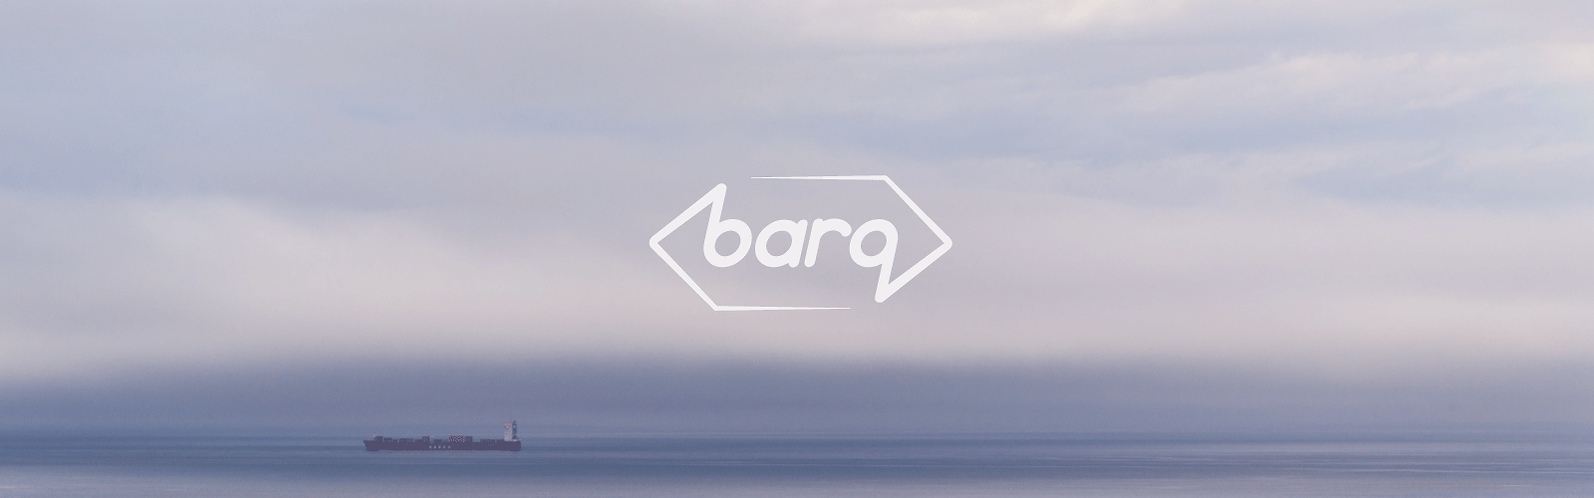 barq digital freight brand design